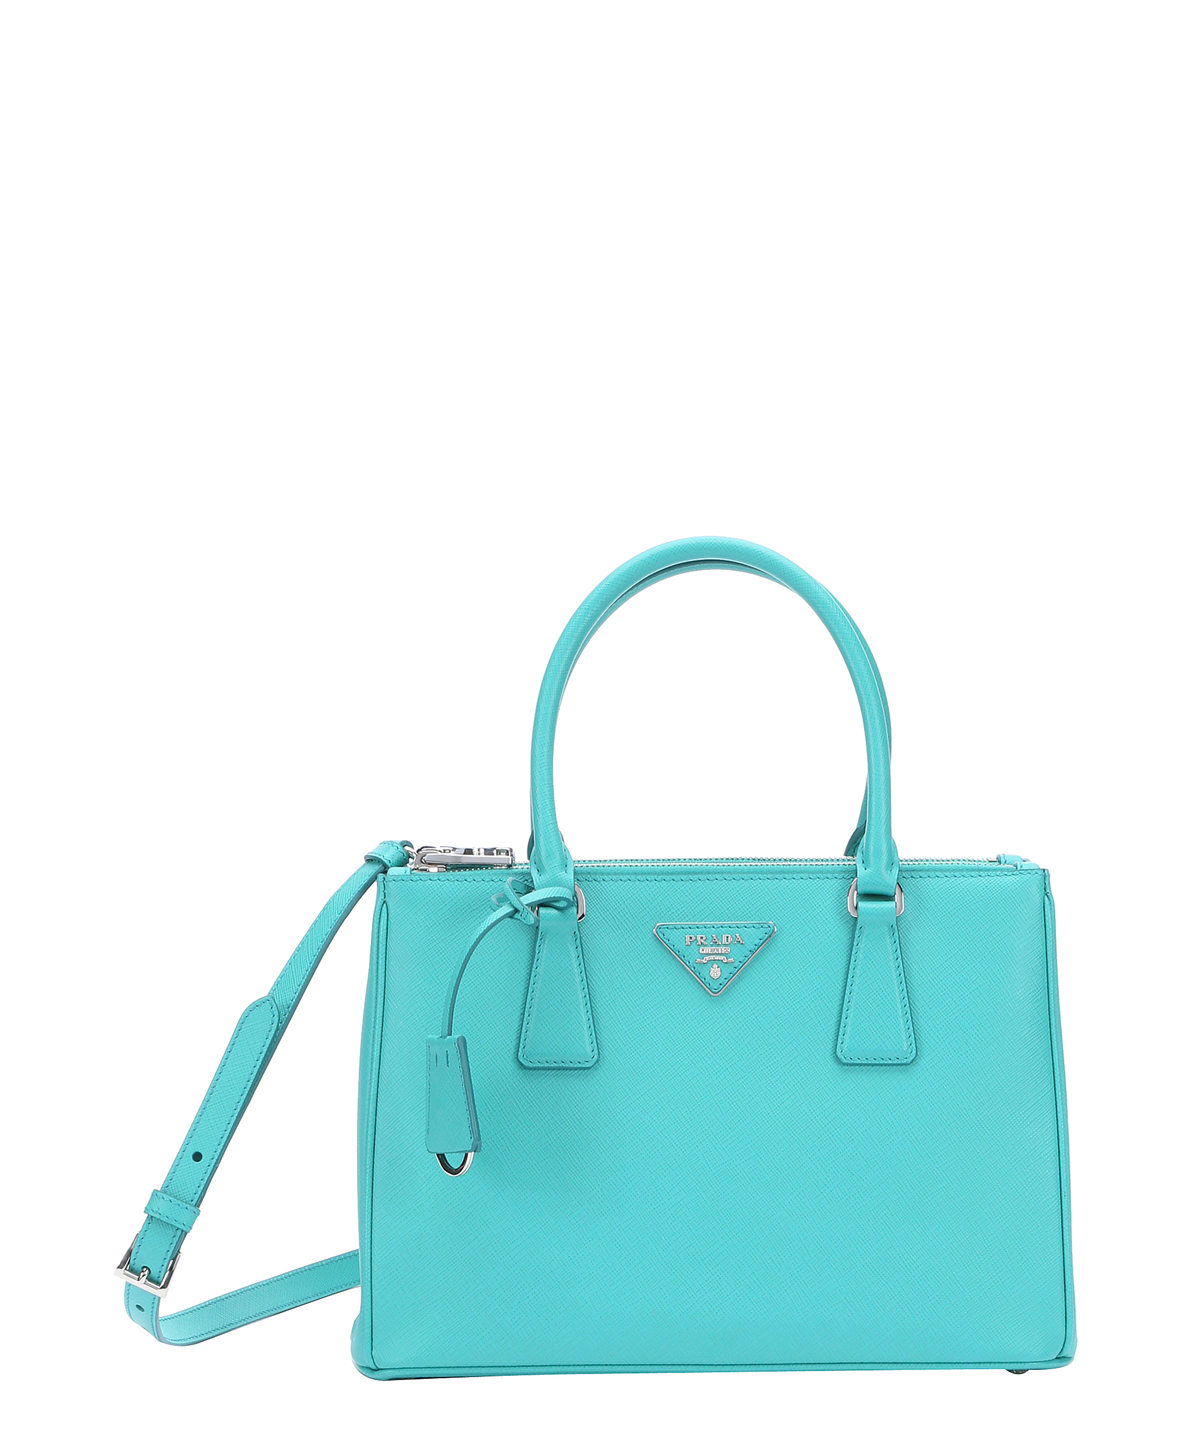 e32ddd8cf8a6 PRADA Turquoise Saffiano Leather Convertible Top Handle Bag'. #prada #bags  #shoulder bags #hand bags #leather #lining #